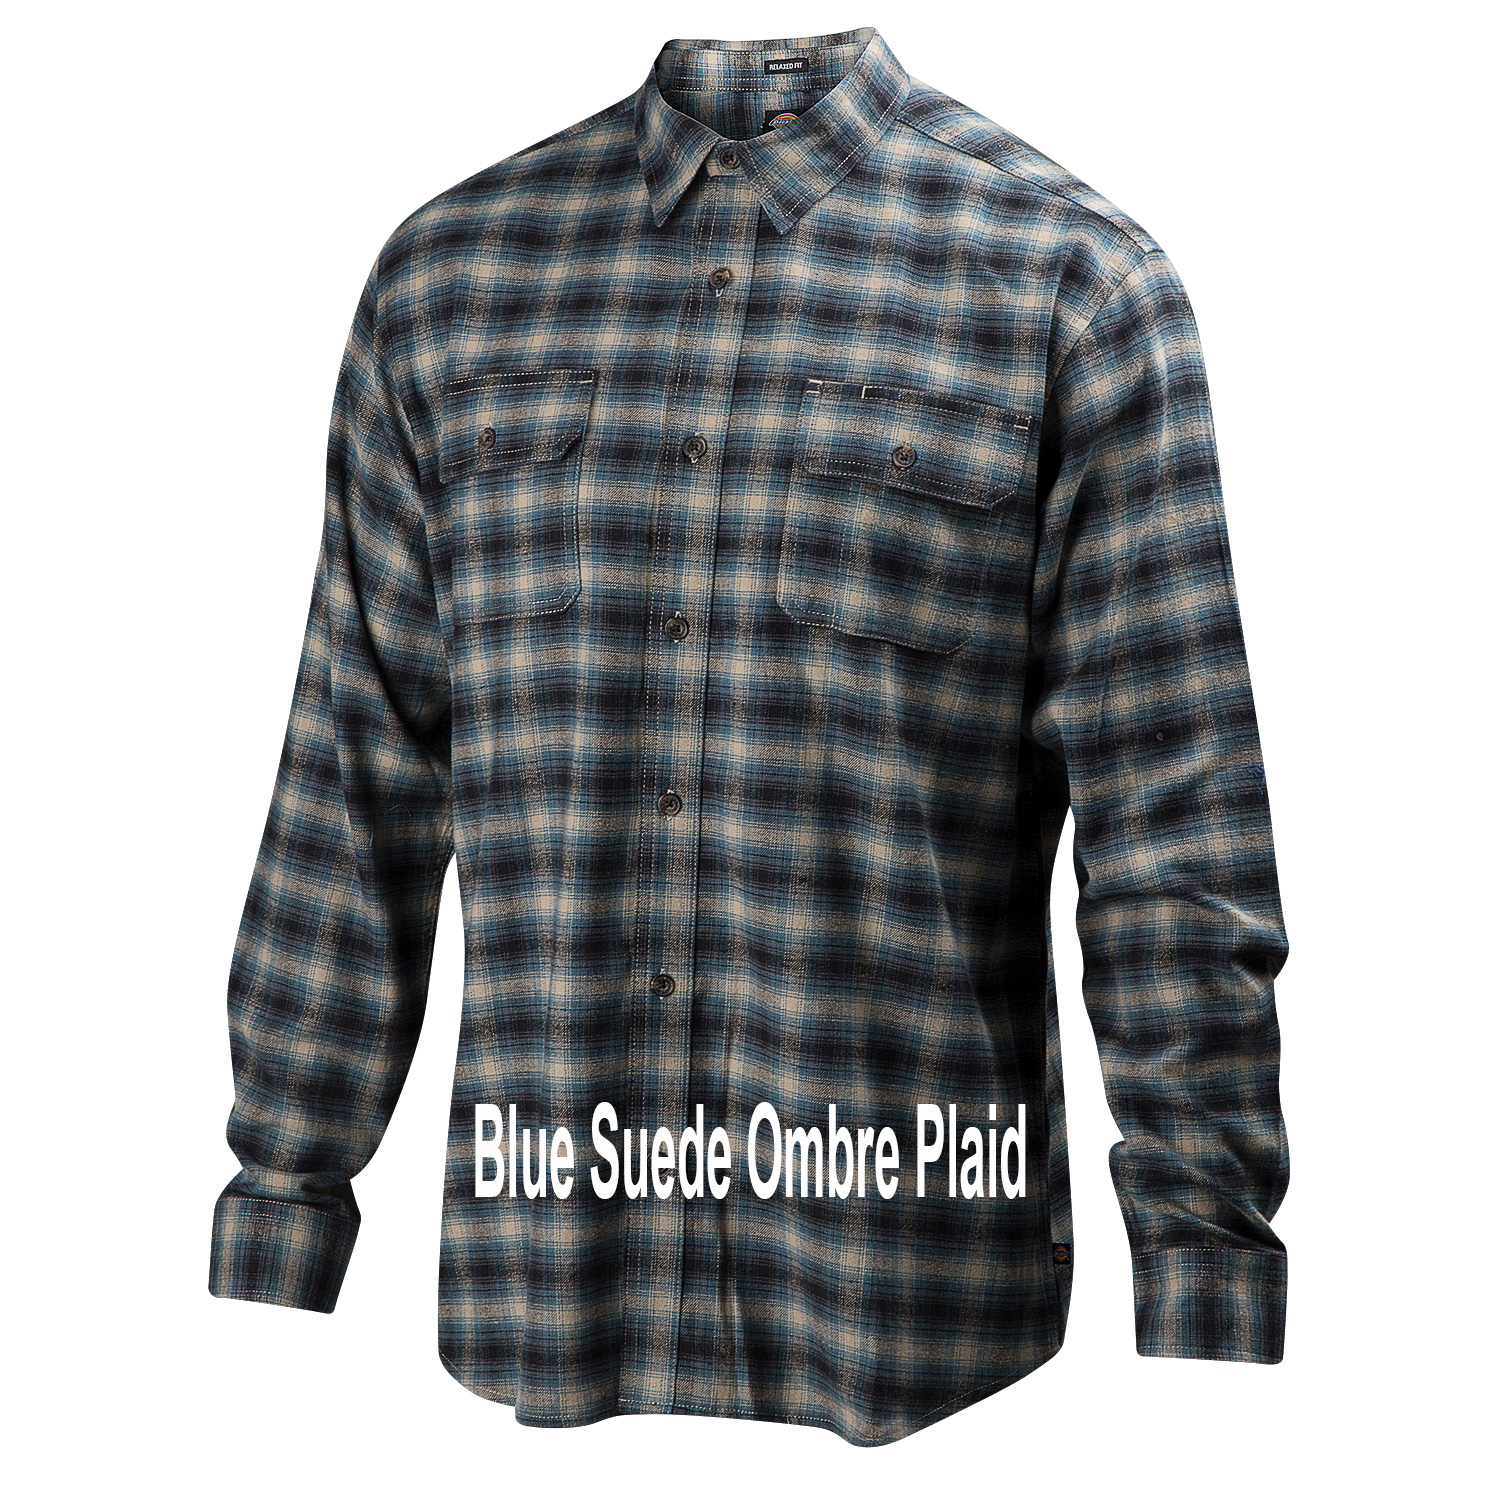 Dickies-Icon-Flannel-Blue-Suede-Ombre-Plaid-Big-Tall-BigCamo-Name